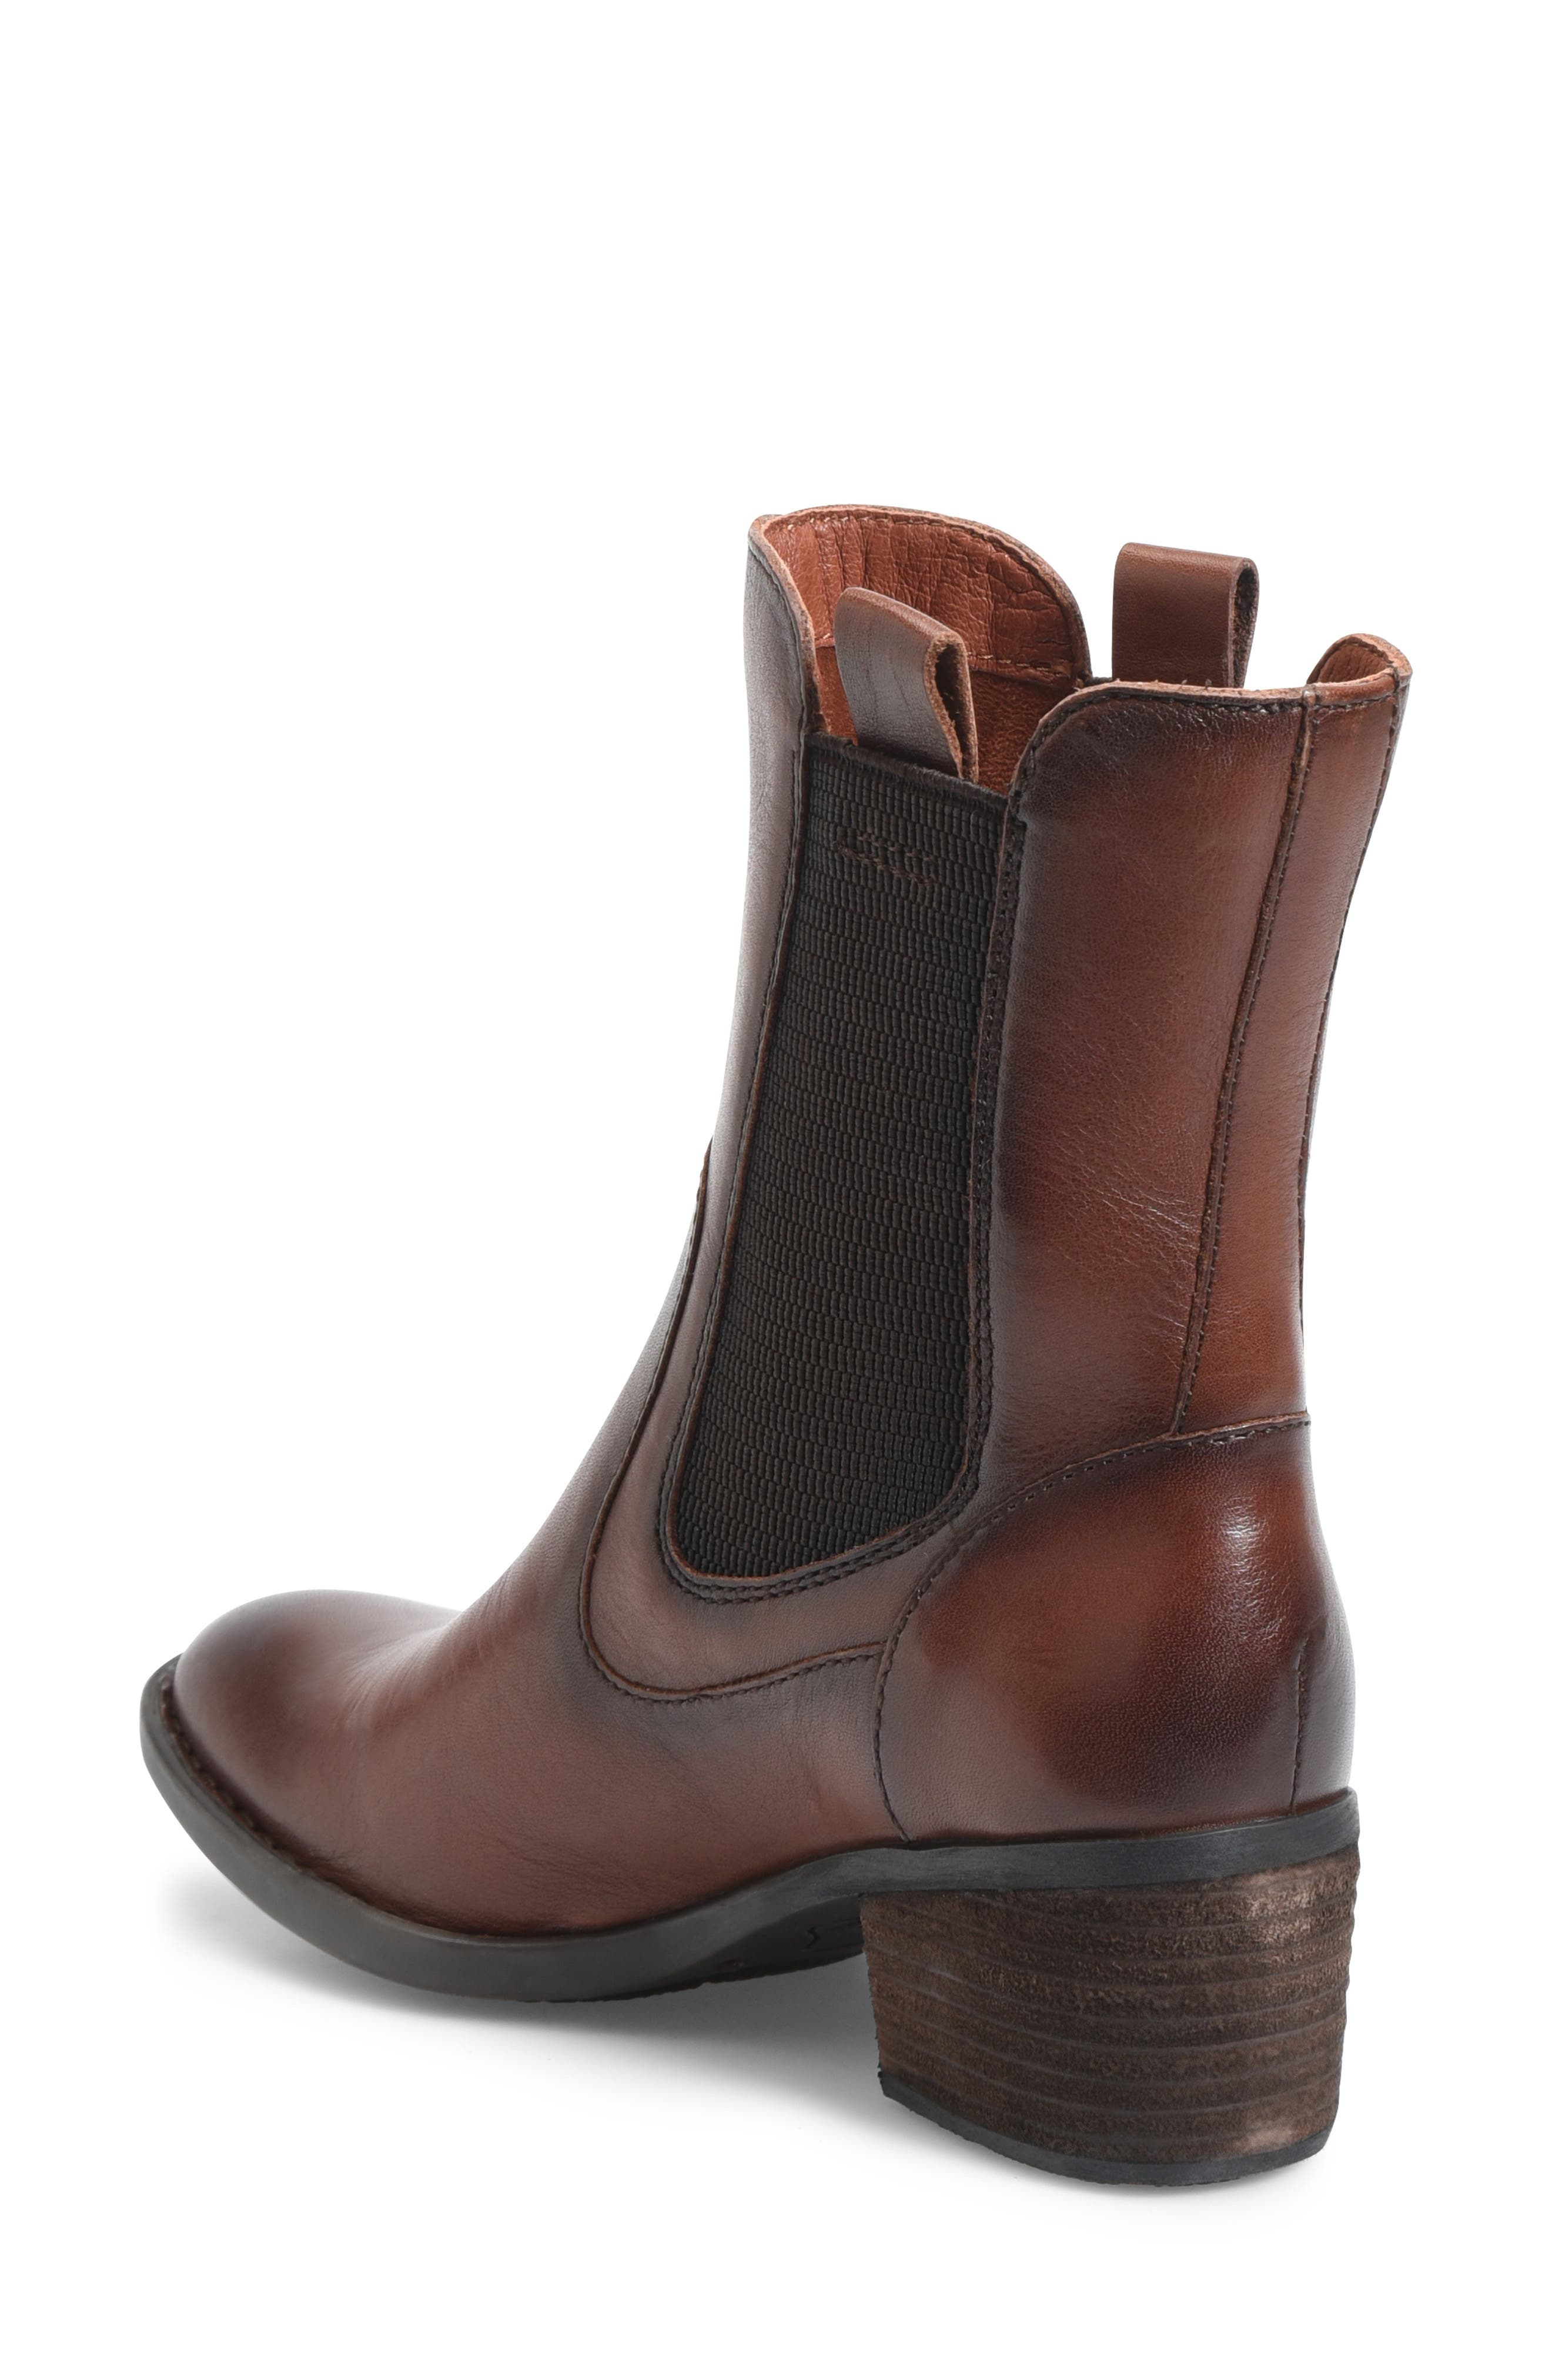 Tenny Chelsea Bootie,                             Alternate thumbnail 2, color,                             BROWN LEATHER